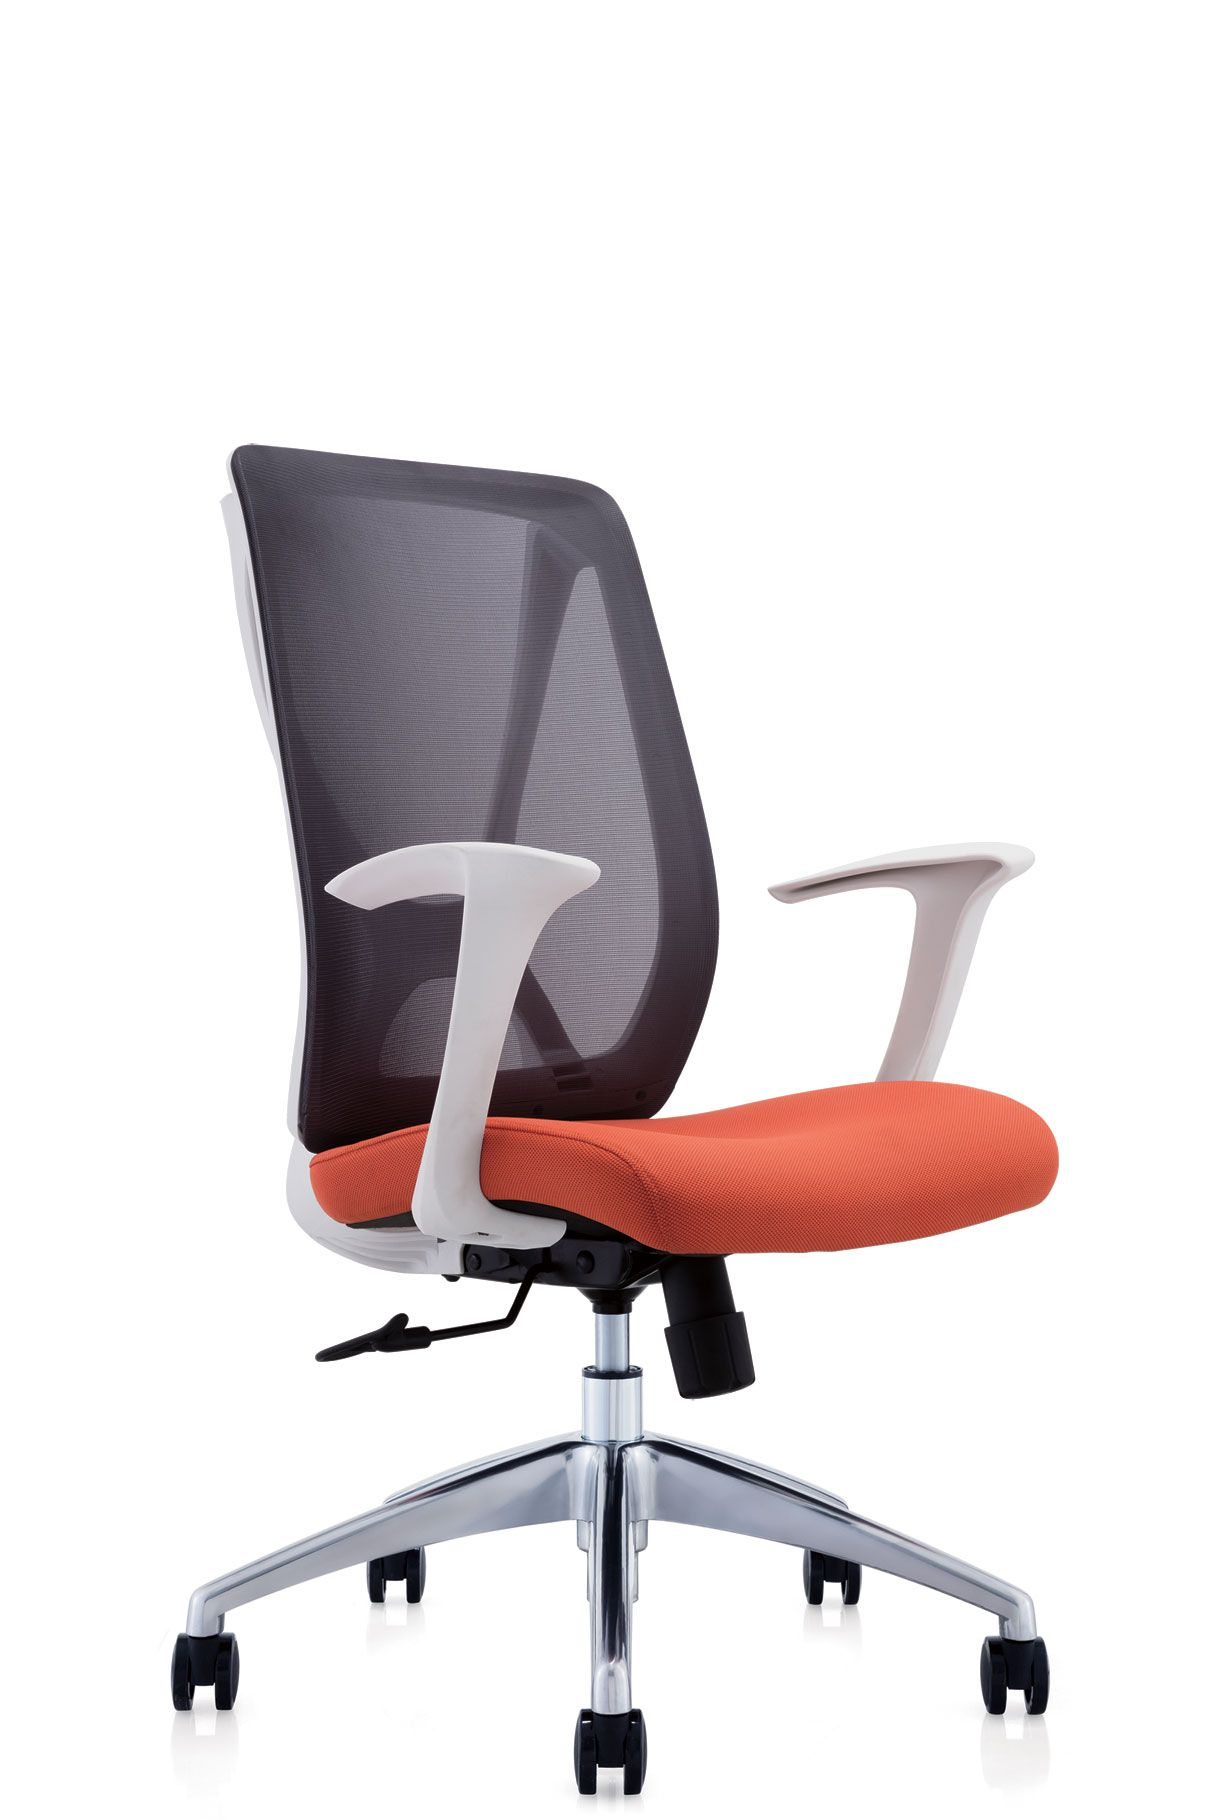 Office Chairs Desks Furniture Uber